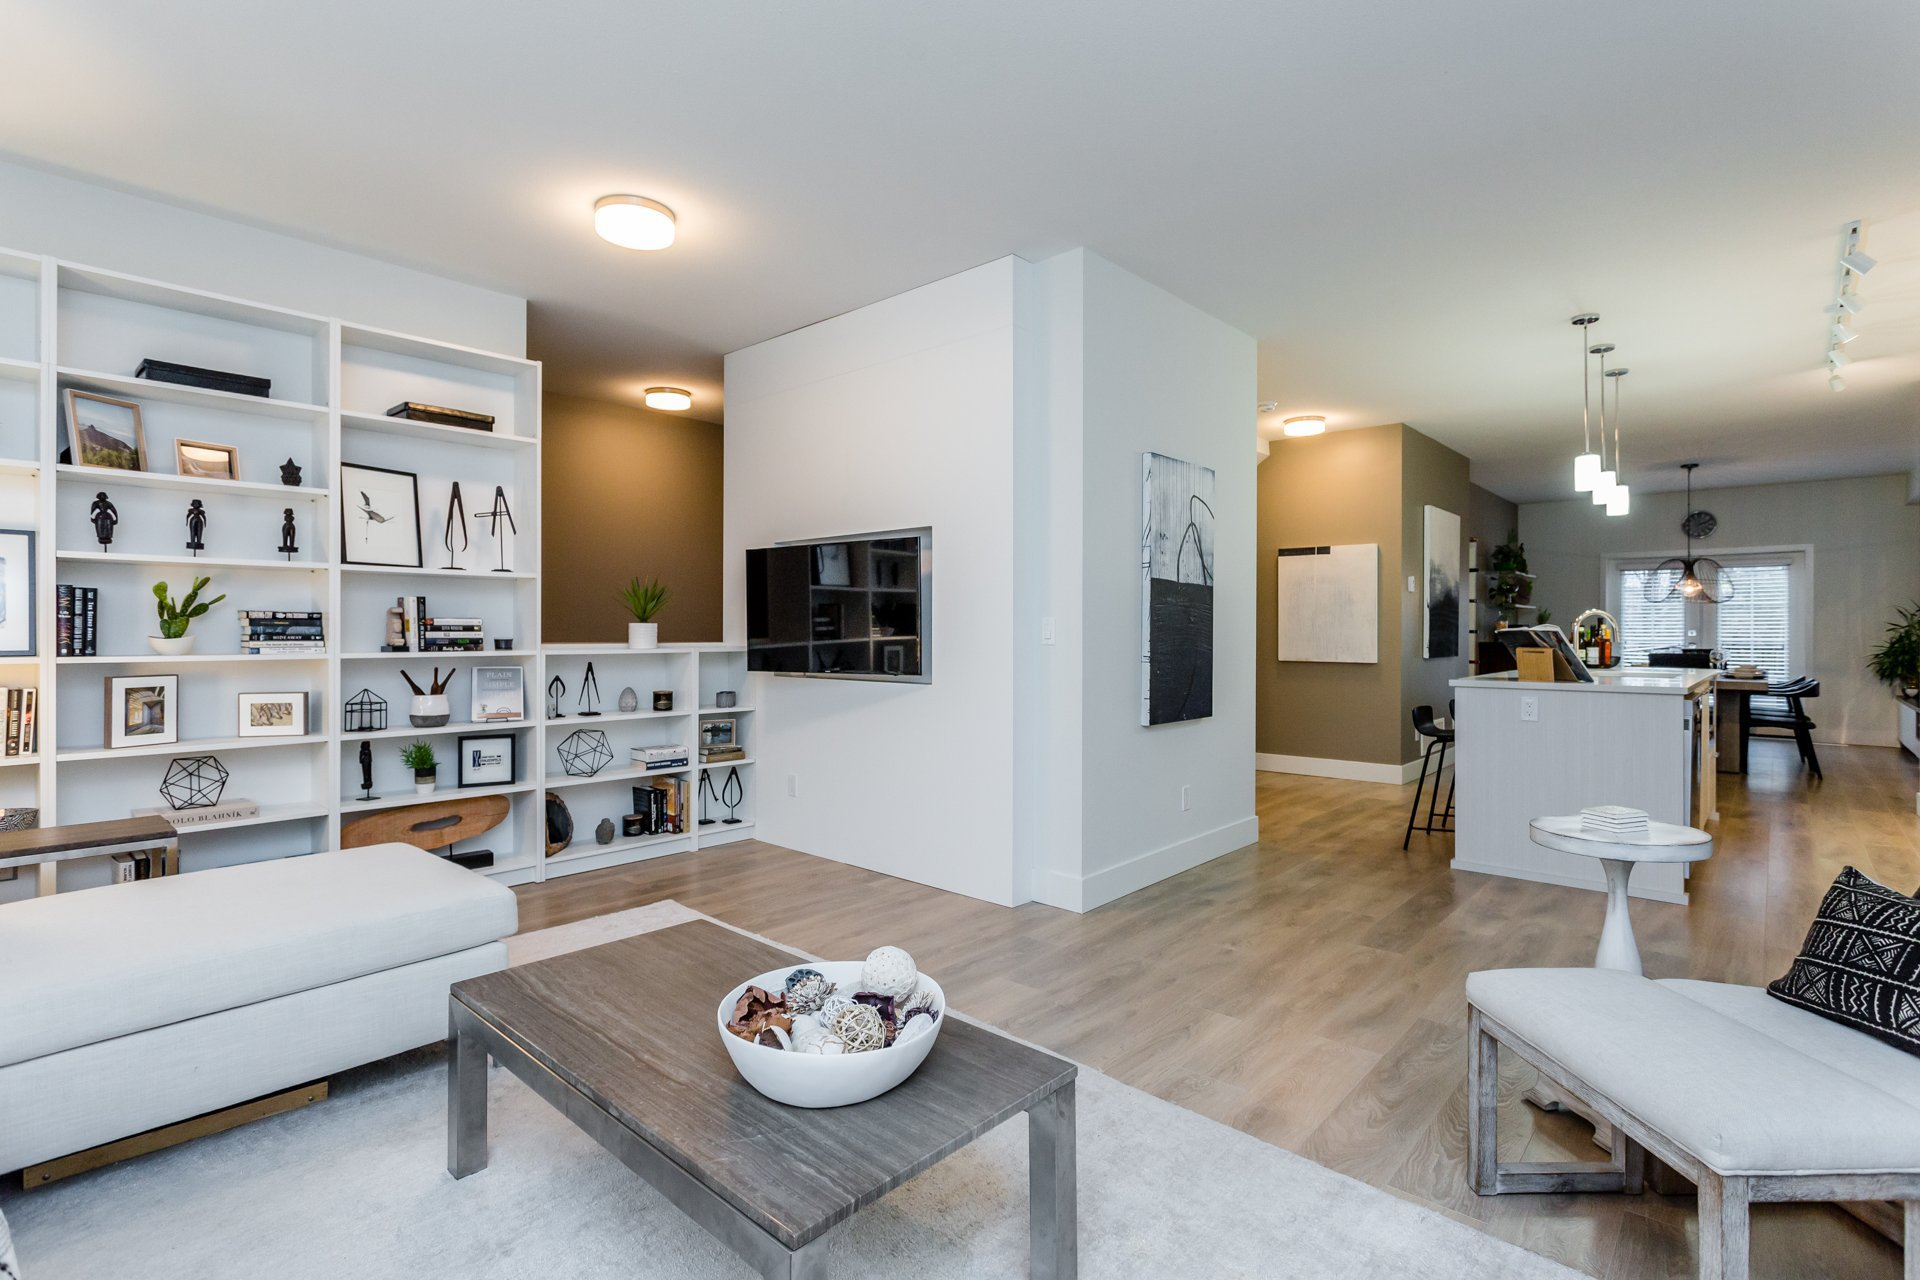 """Photo 18: Photos: 8 8217 204B Street in Langley: Willoughby Heights Townhouse for sale in """"EVERLY GREEN"""" : MLS®# R2236678"""